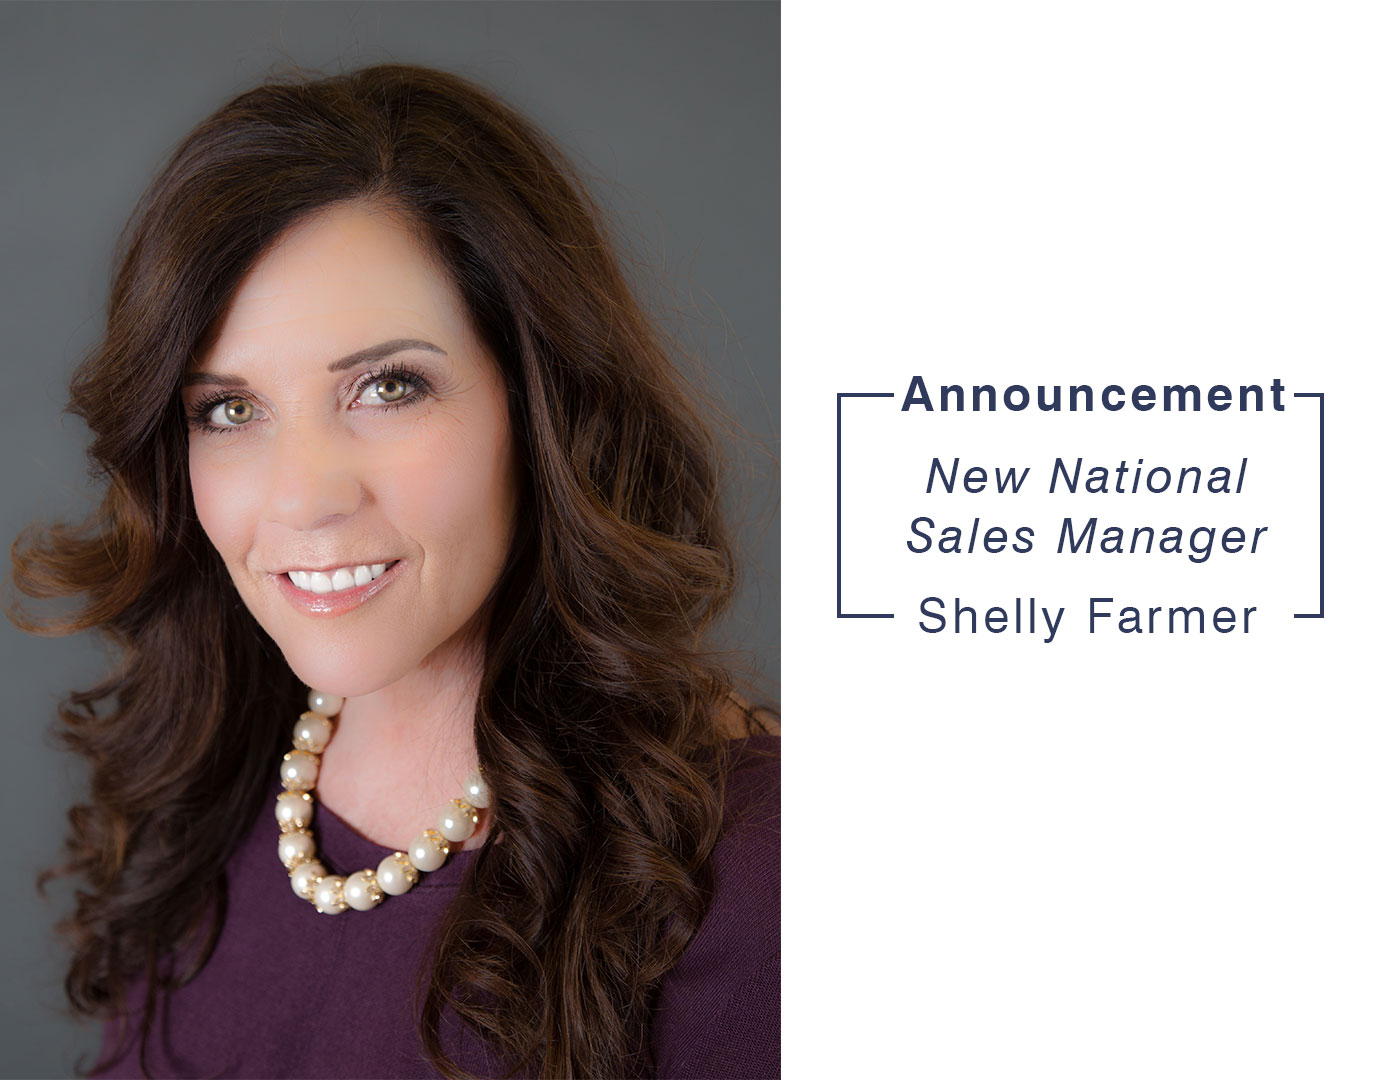 Shelly Farmer Introduction